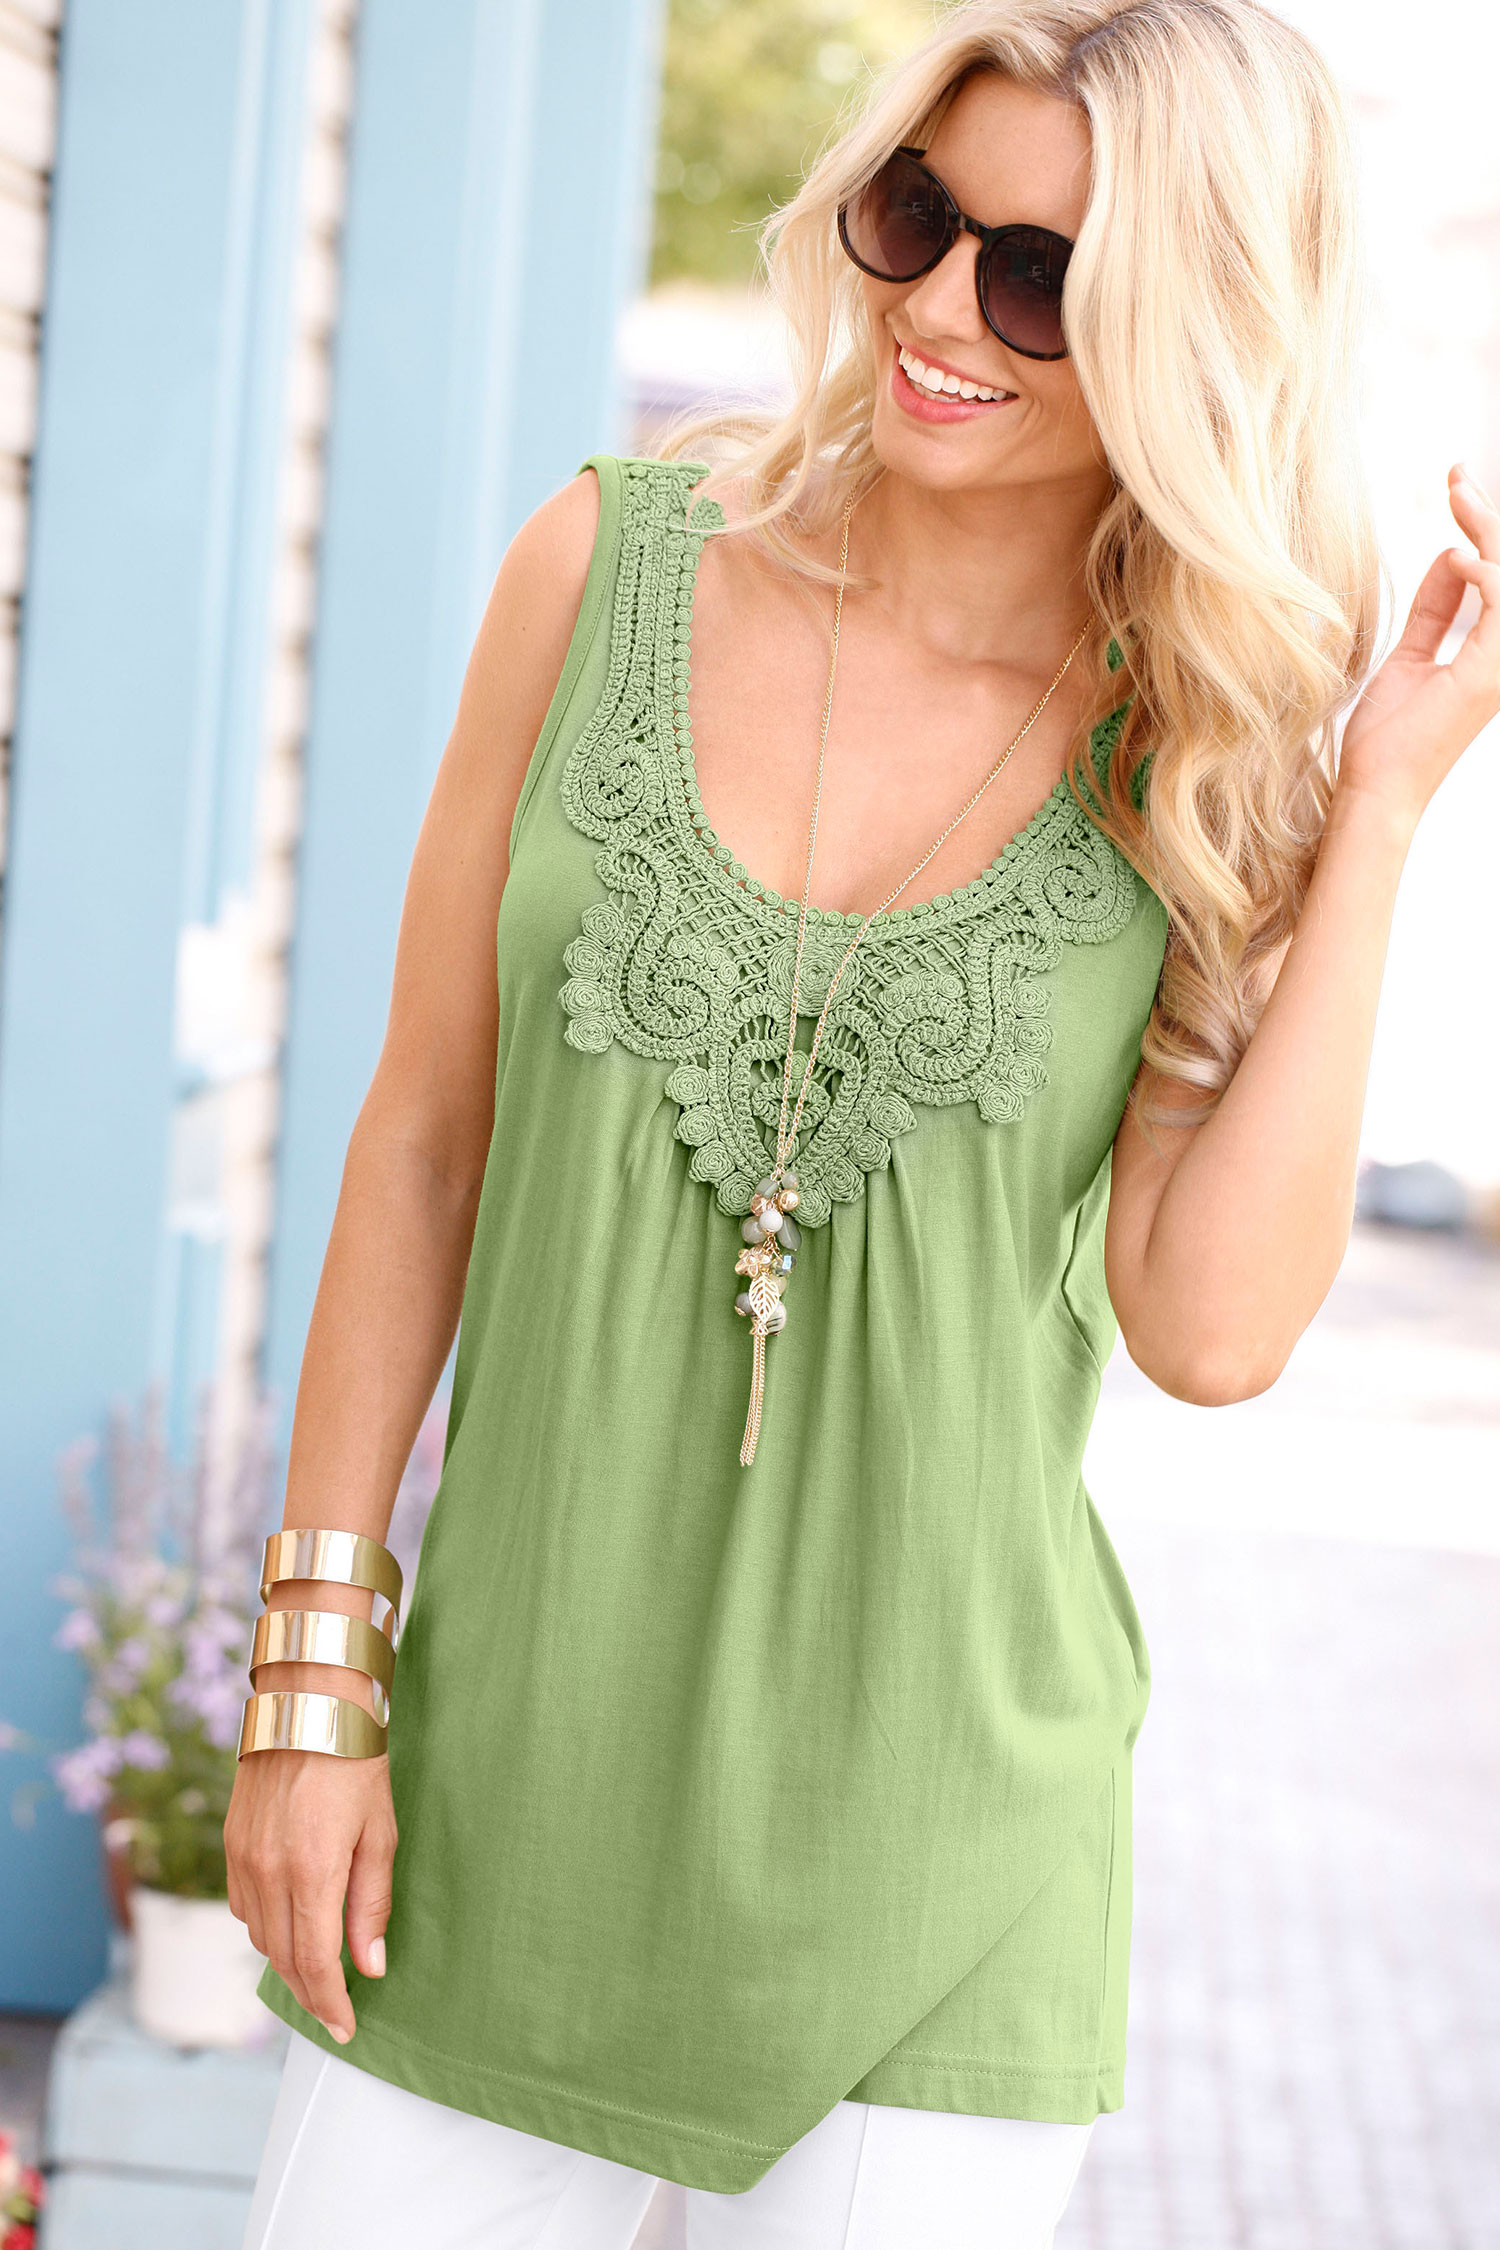 Go Green with green clothes: Capture European Lace Top